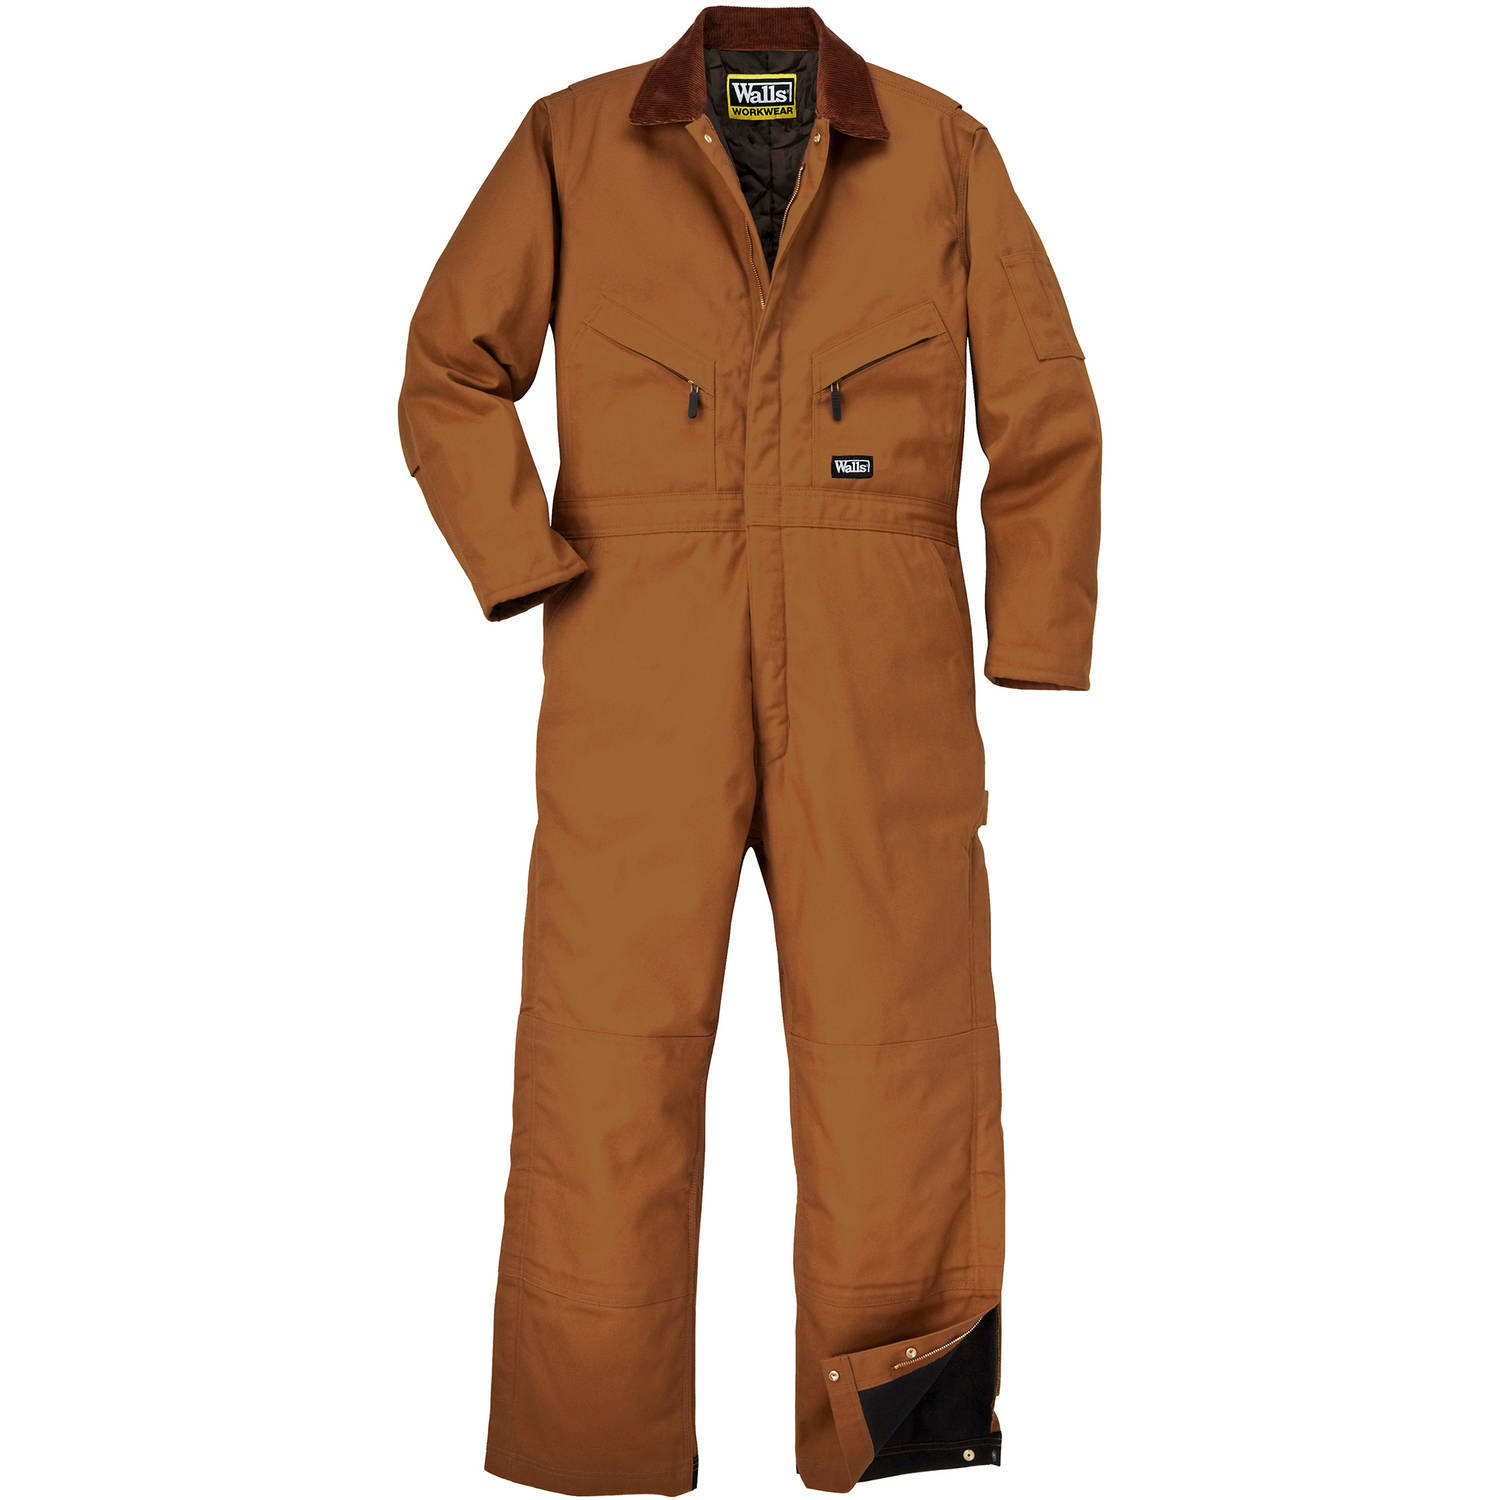 Walls Big Men's Insulated Duck Coverall